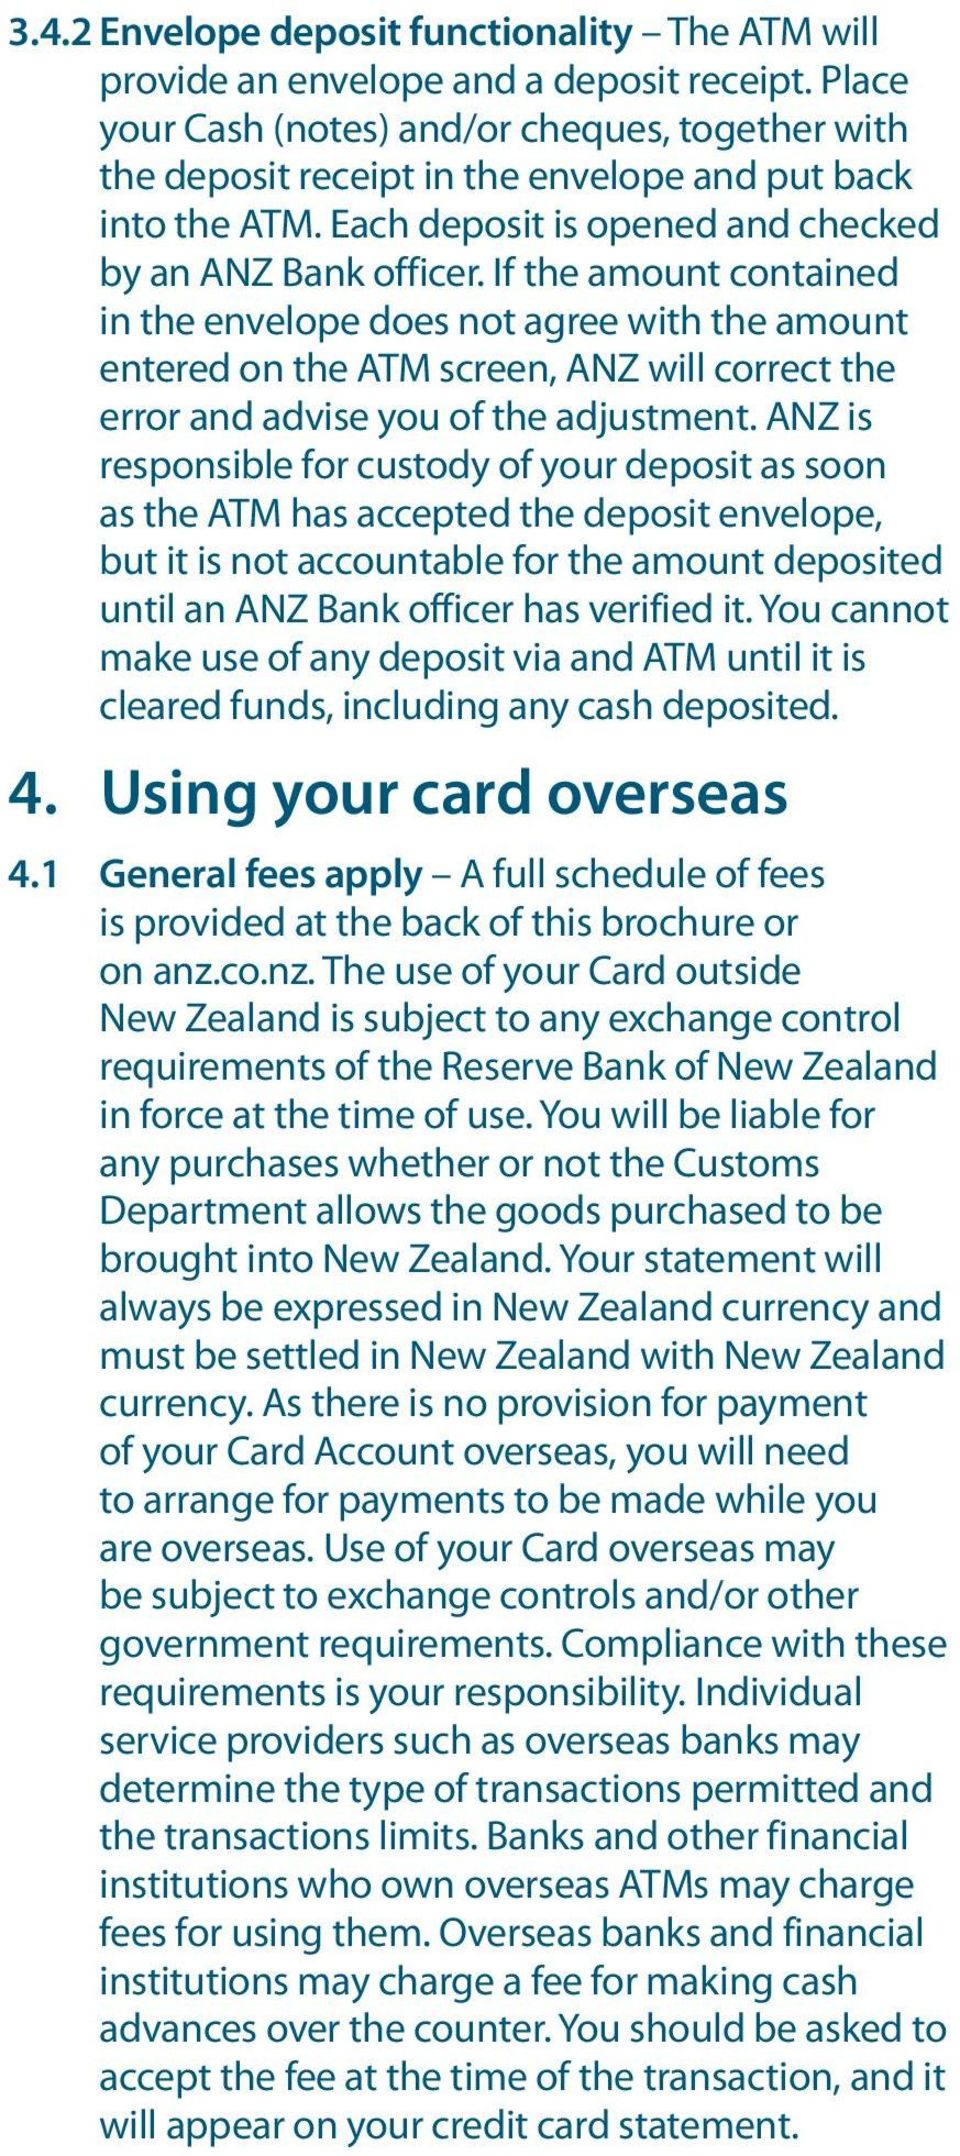 If the amount contained in the envelope does not agree with the amount entered on the ATM screen, ANZ will correct the error and advise you of the adjustment.